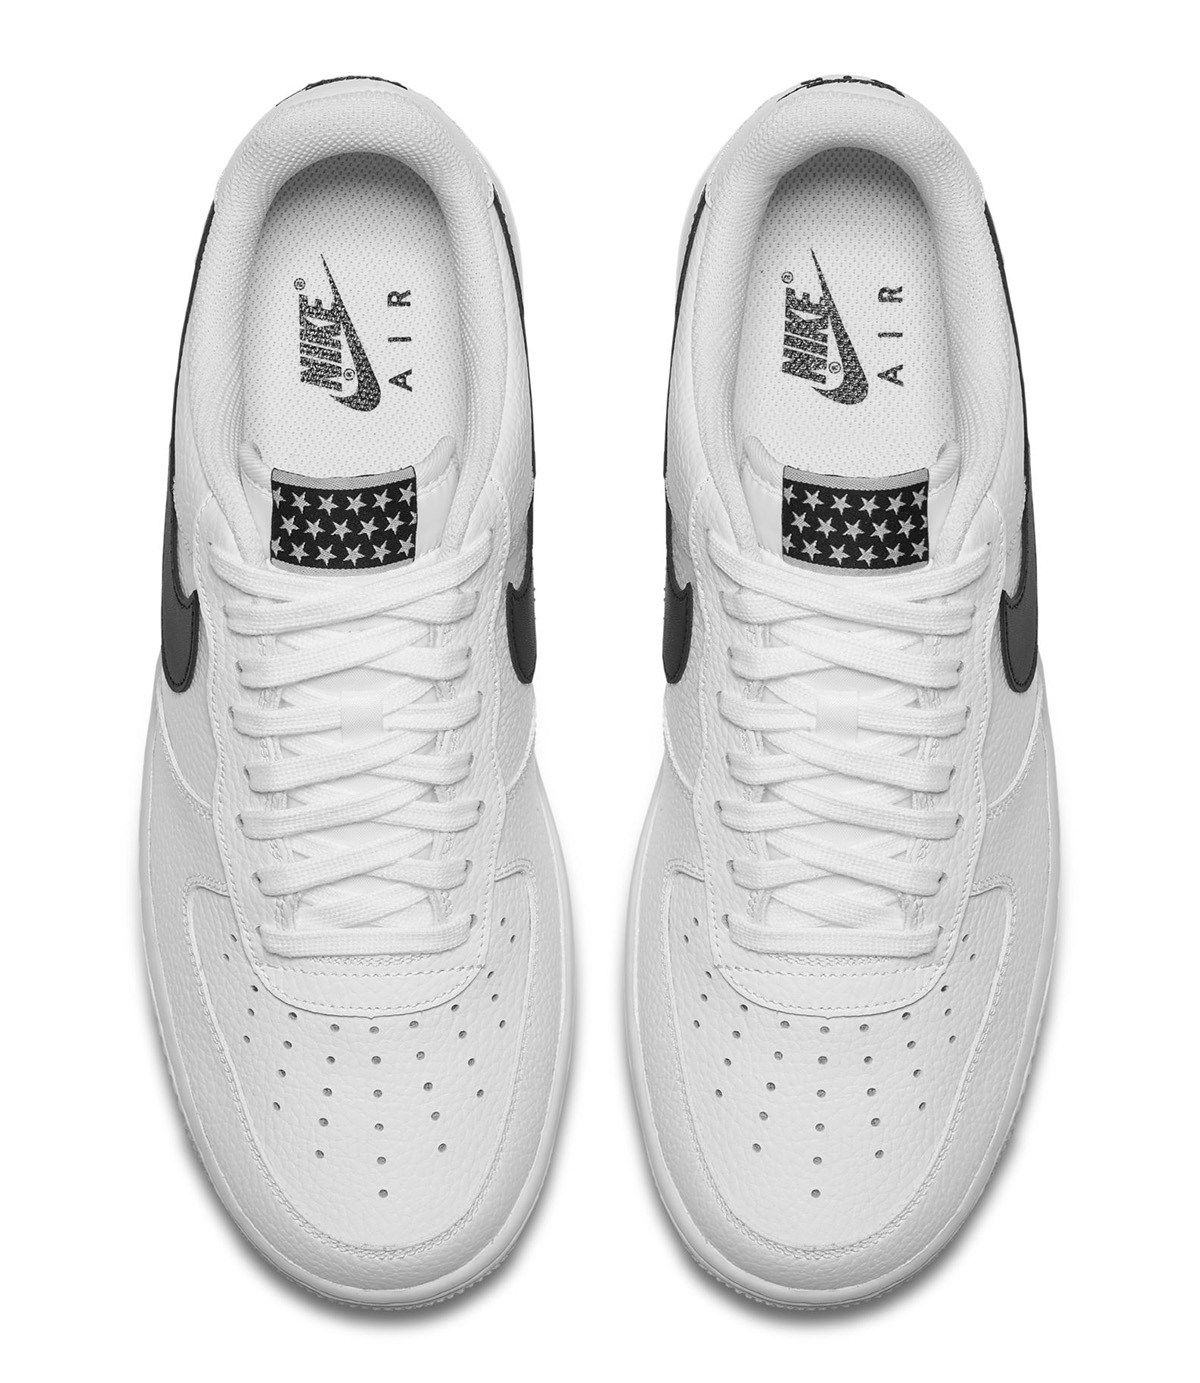 Nike Air Force 1 Low to Release in Four Colorways with Stars - EU Kicks   Sneaker Magazine e16ffff976d47